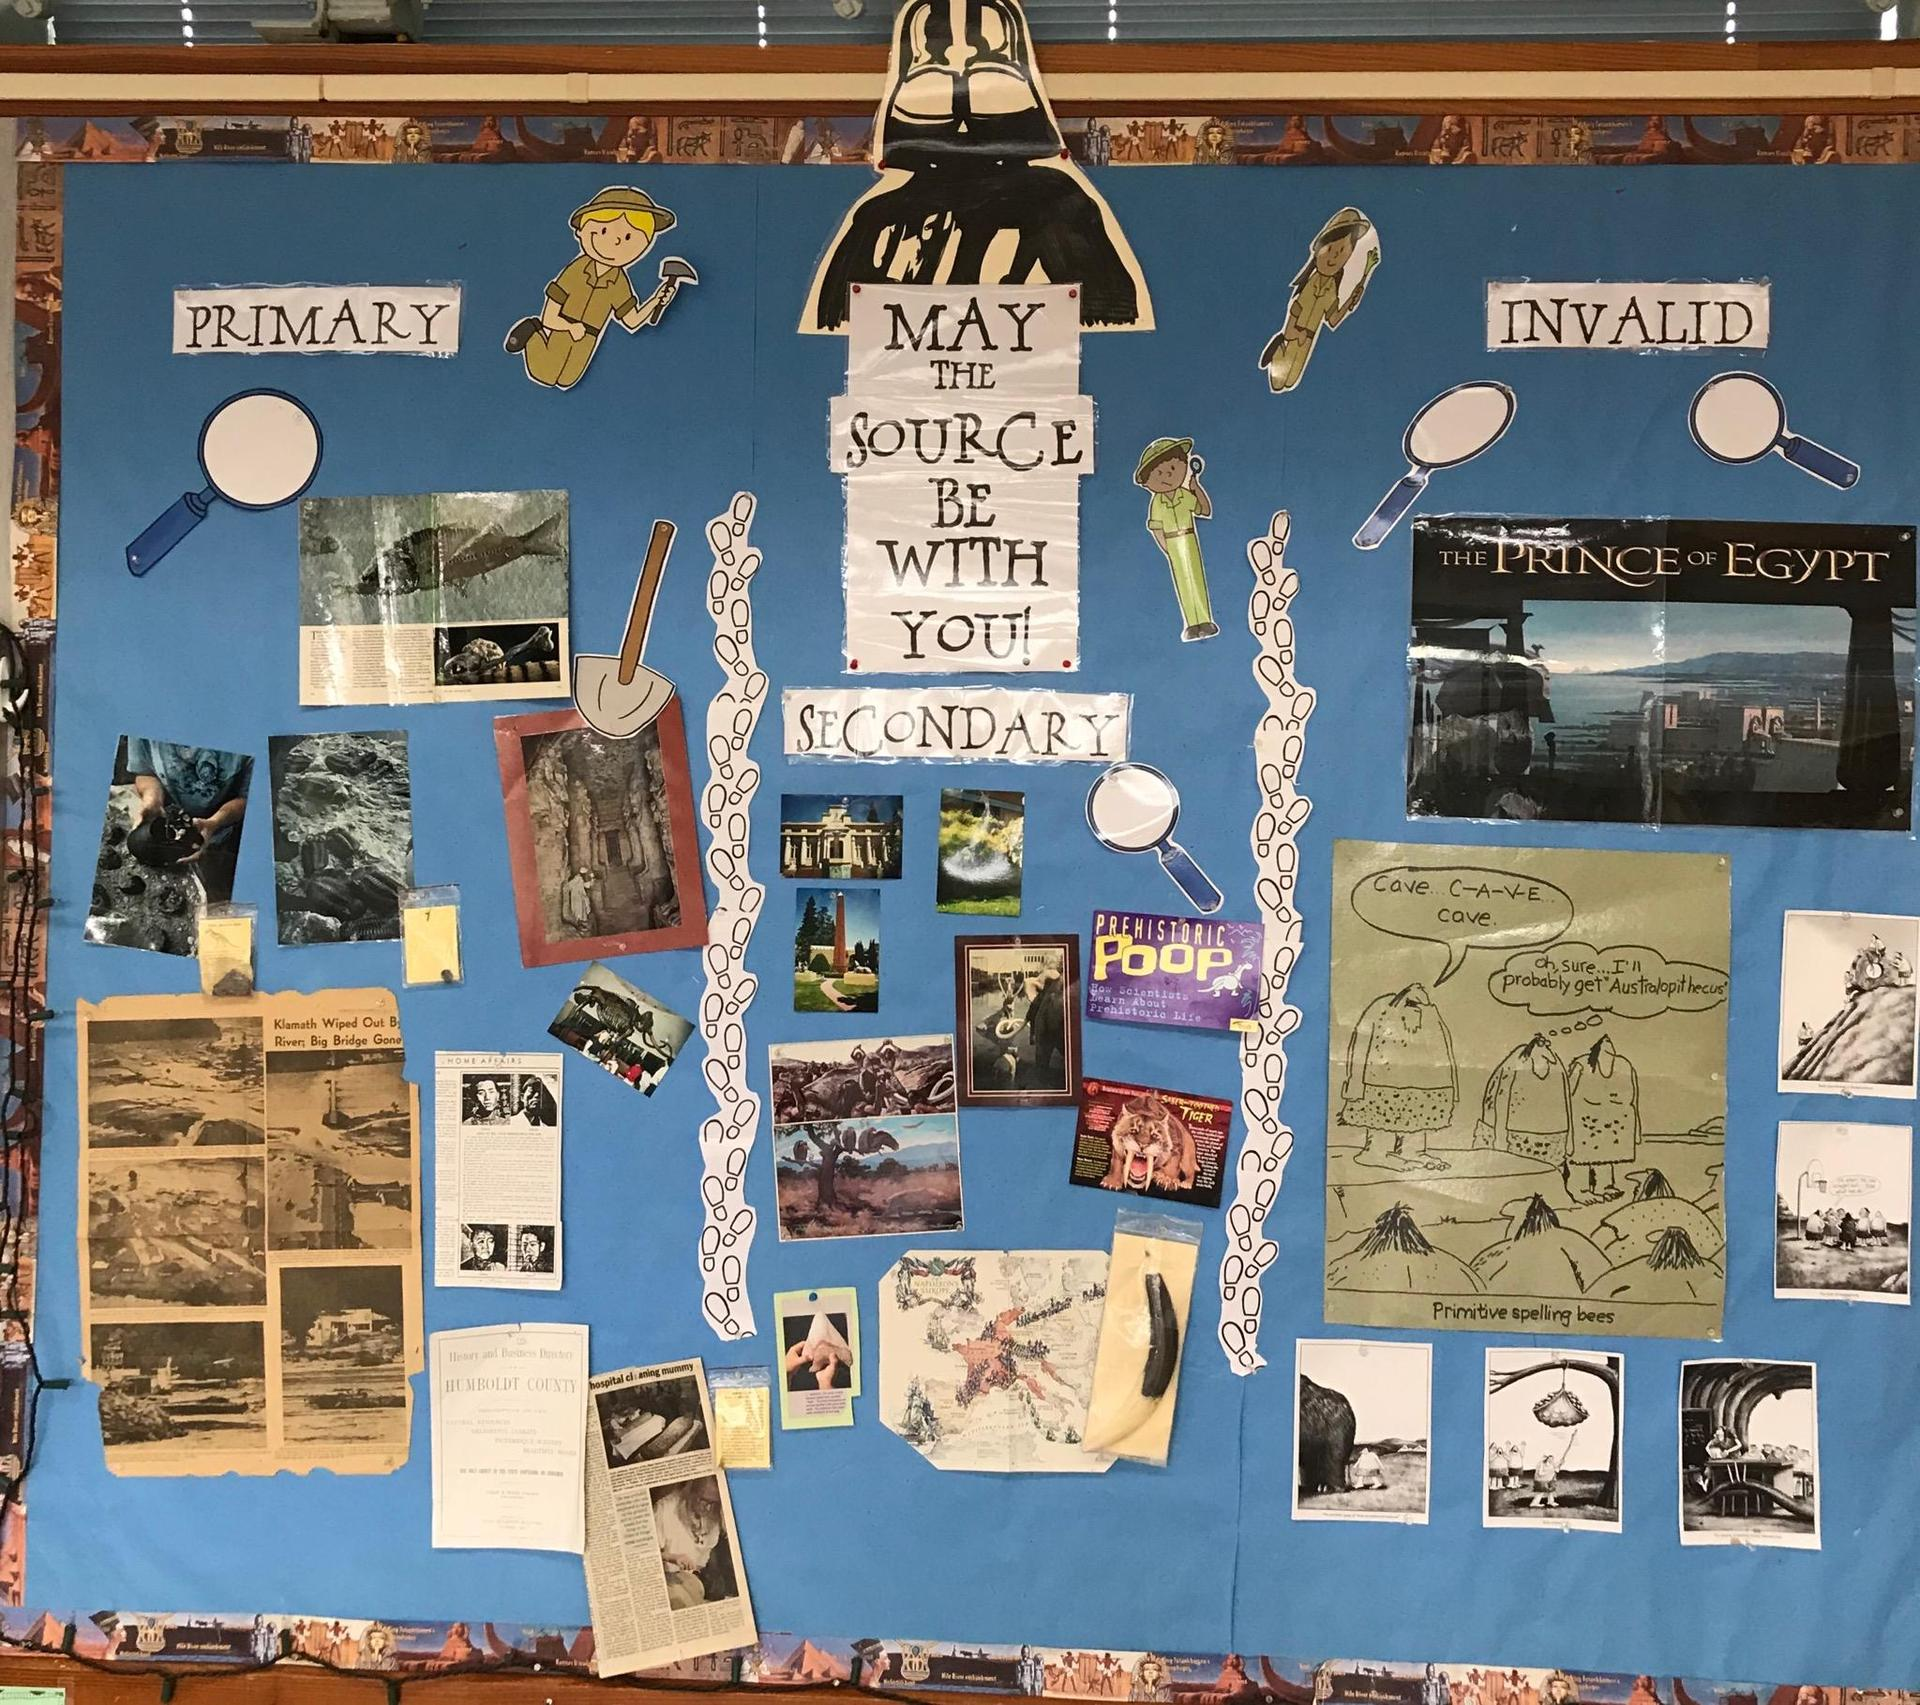 Bulletin Board-May the Source Be With You shows the difference between primary and secondary sources.